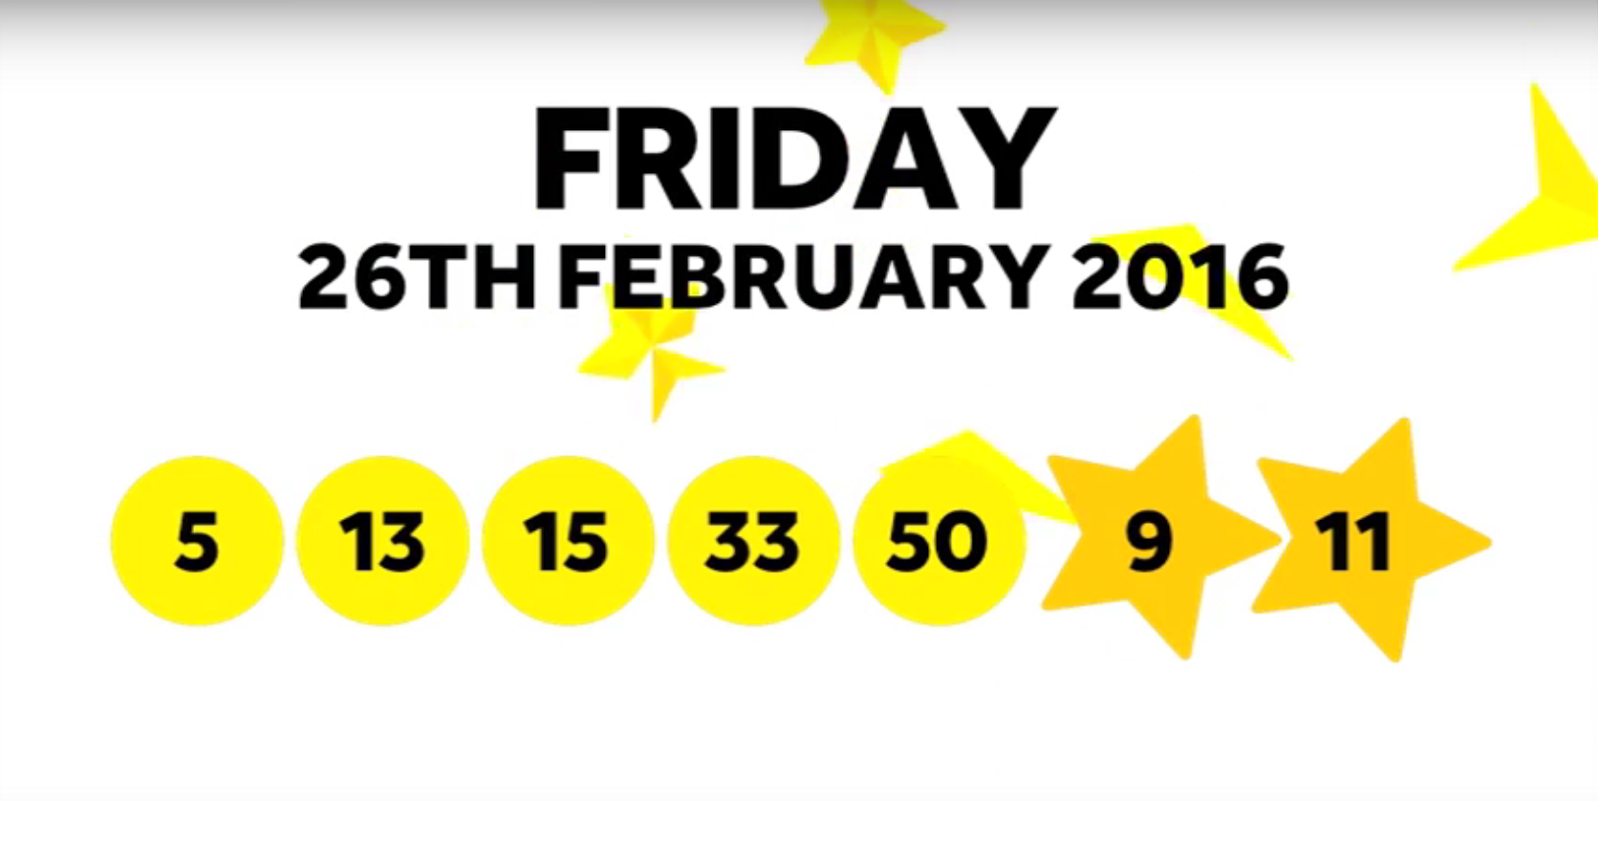 The National Lottery Friday 'EuroMillions' draw results from 26th February 2016